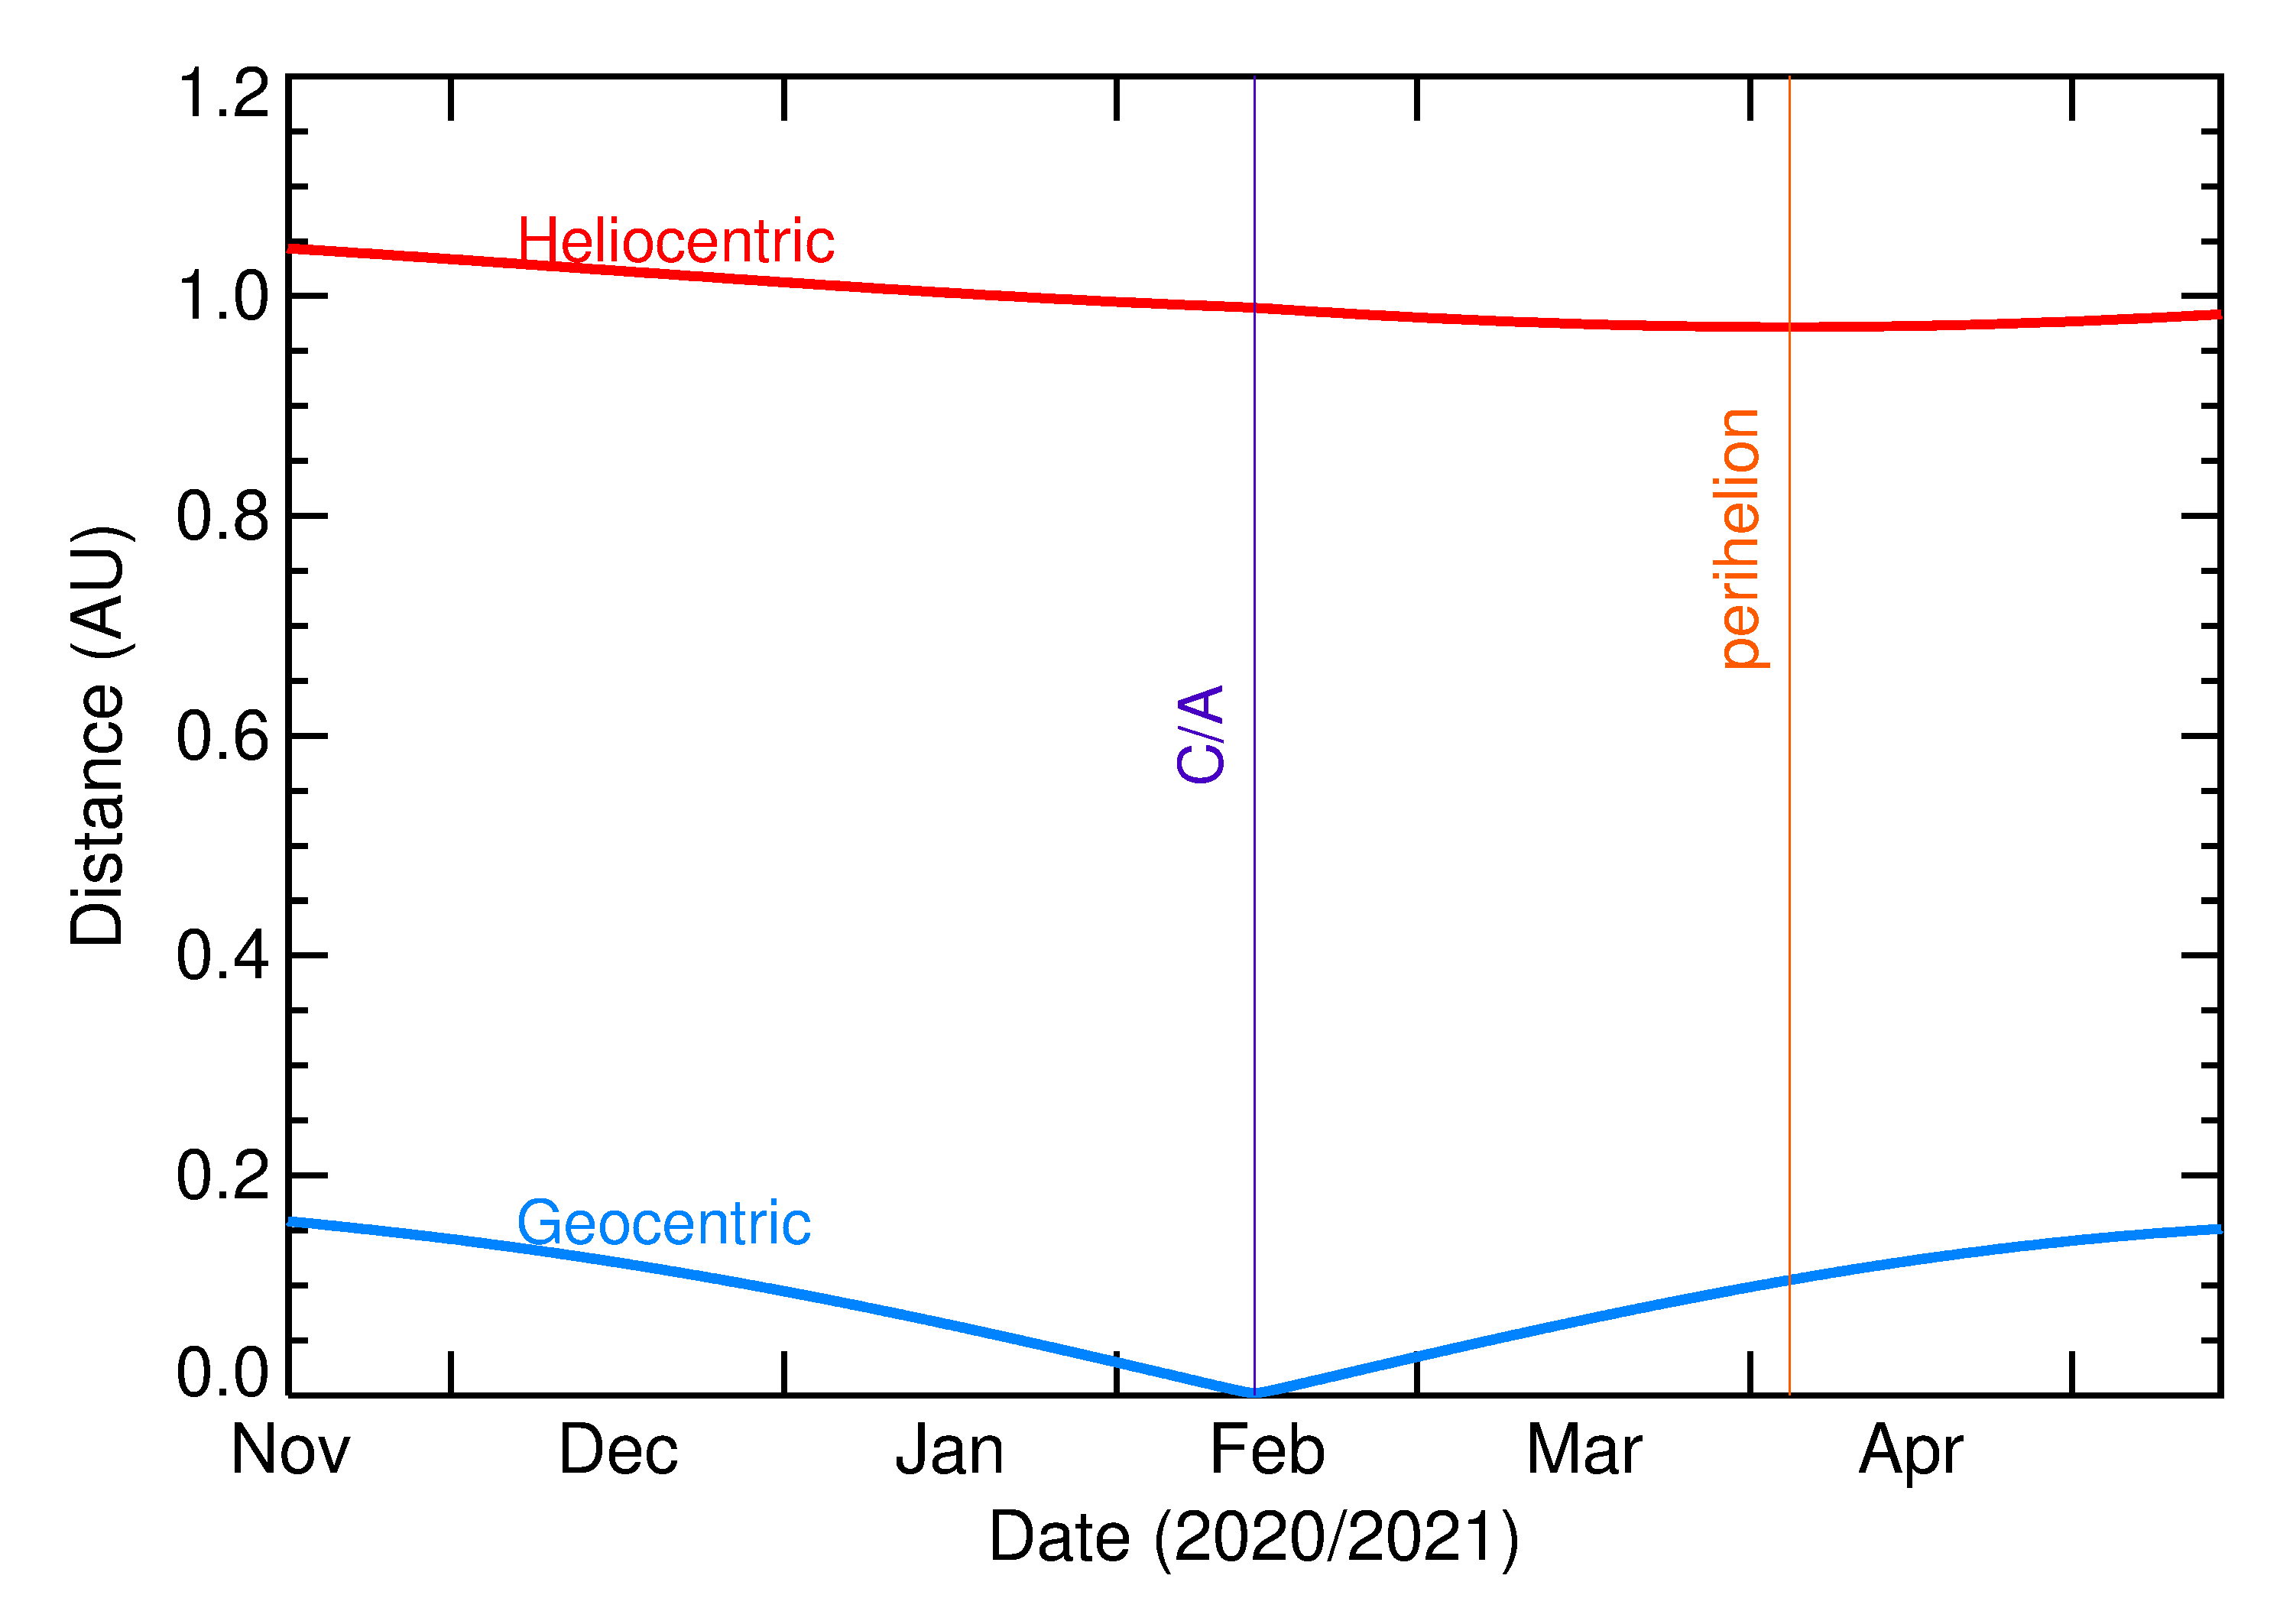 Heliocentric and Geocentric Distances of 2021 CC7 in the months around closest approach